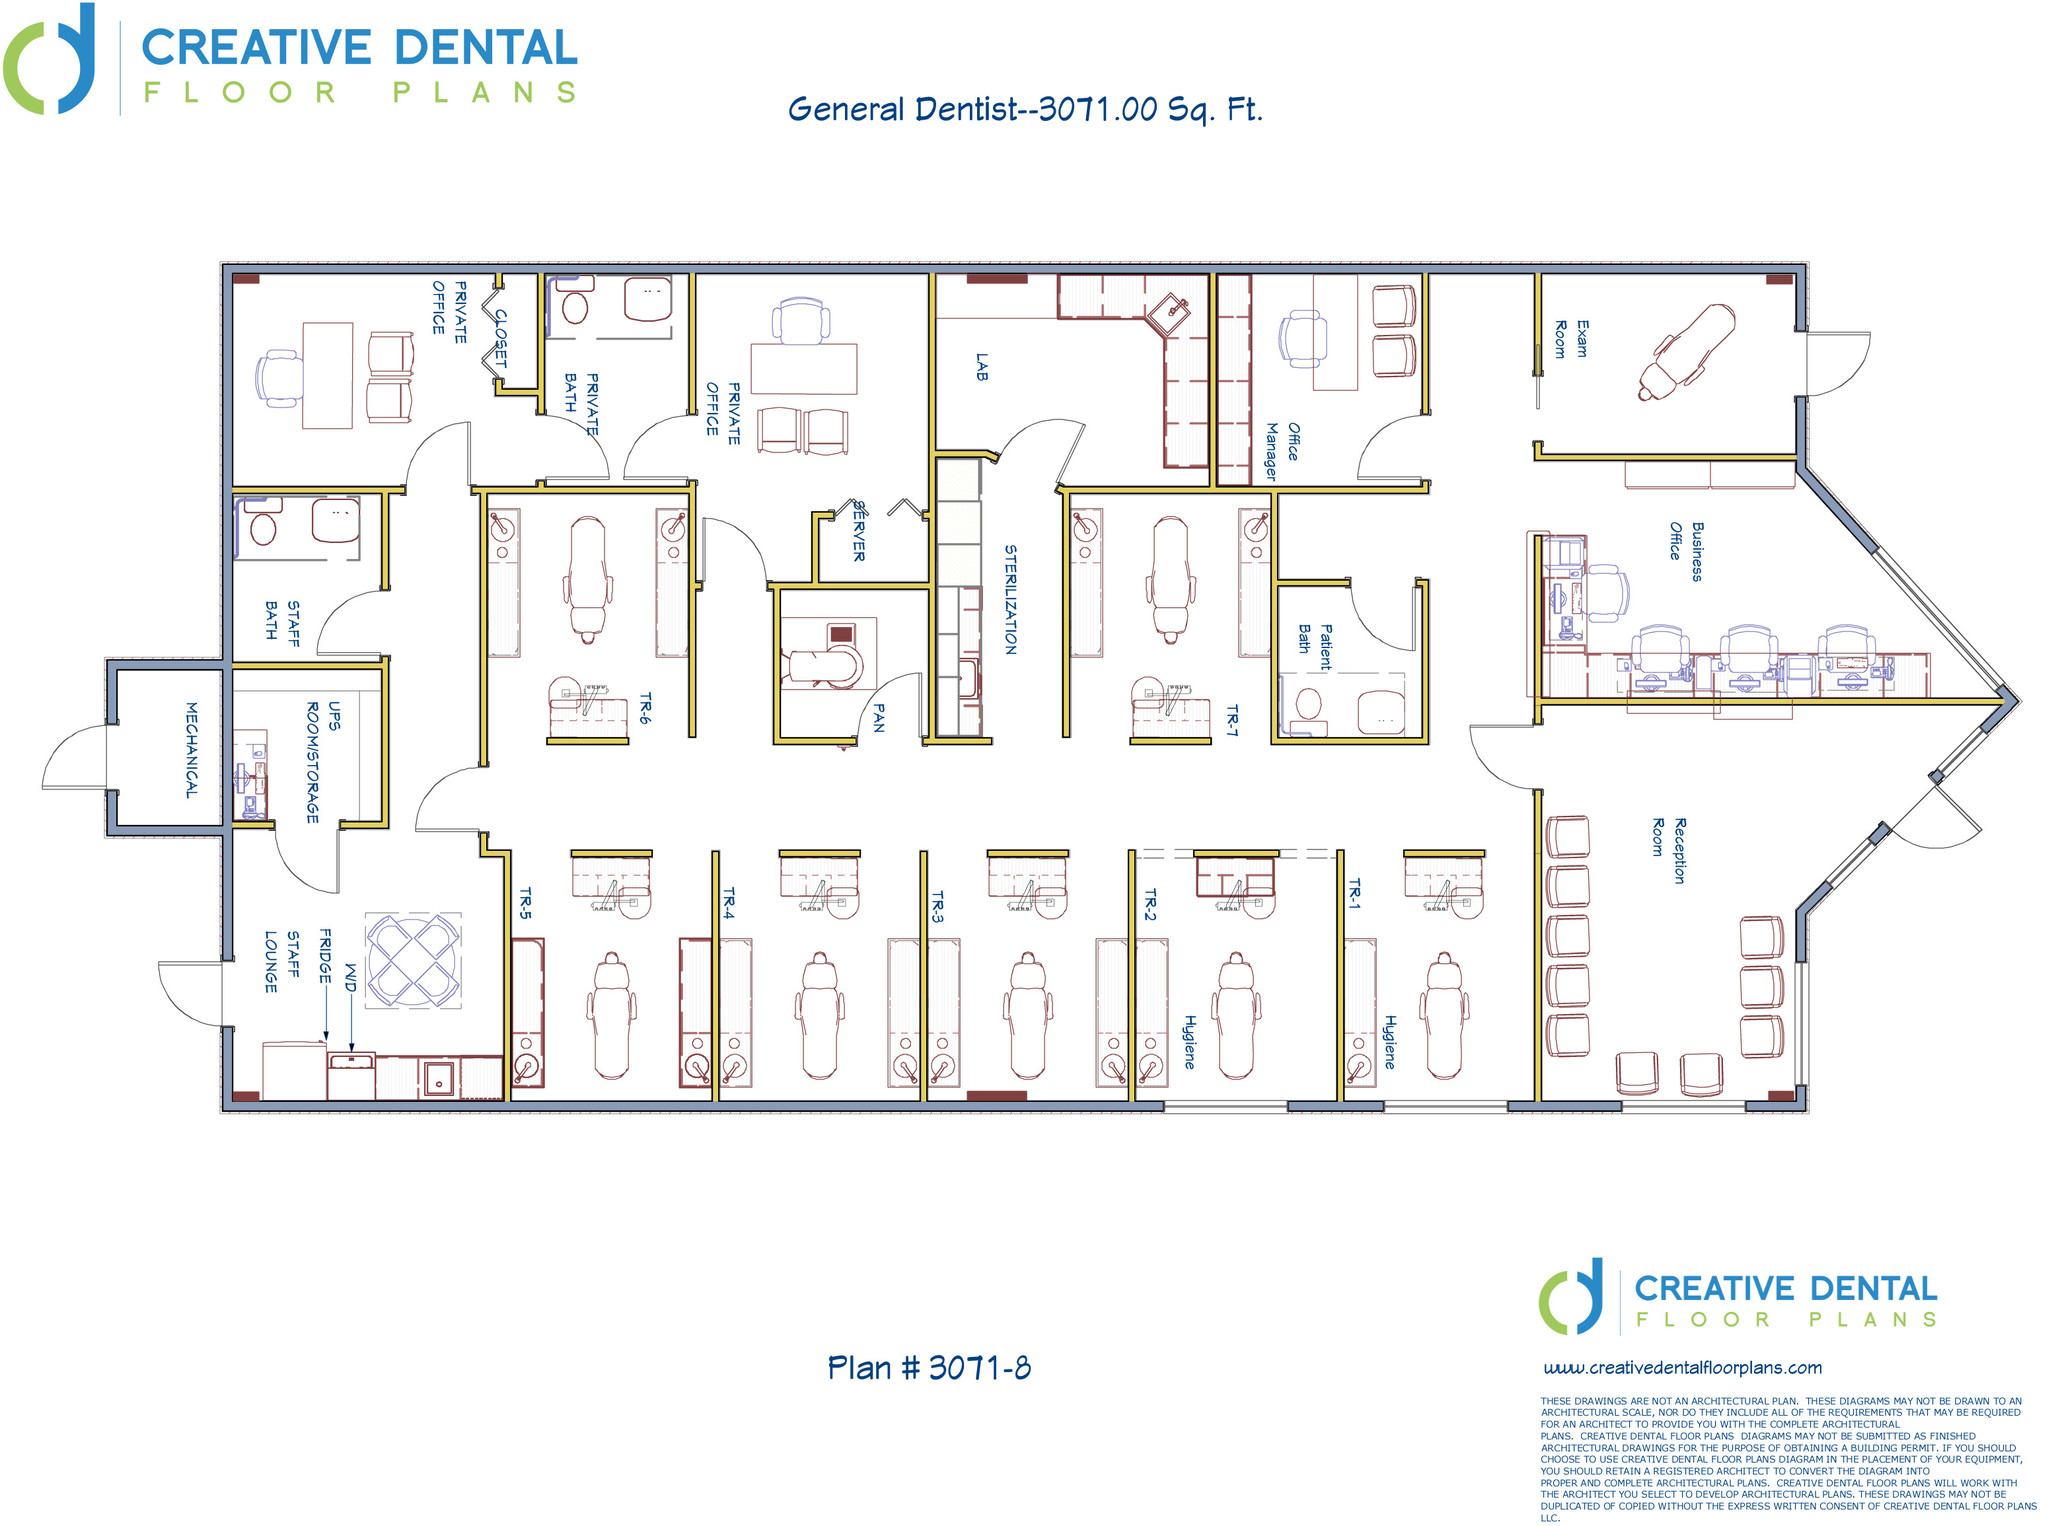 Creative dental floor plans strip mall floor plans for 3000 sq ft apartment floor plan